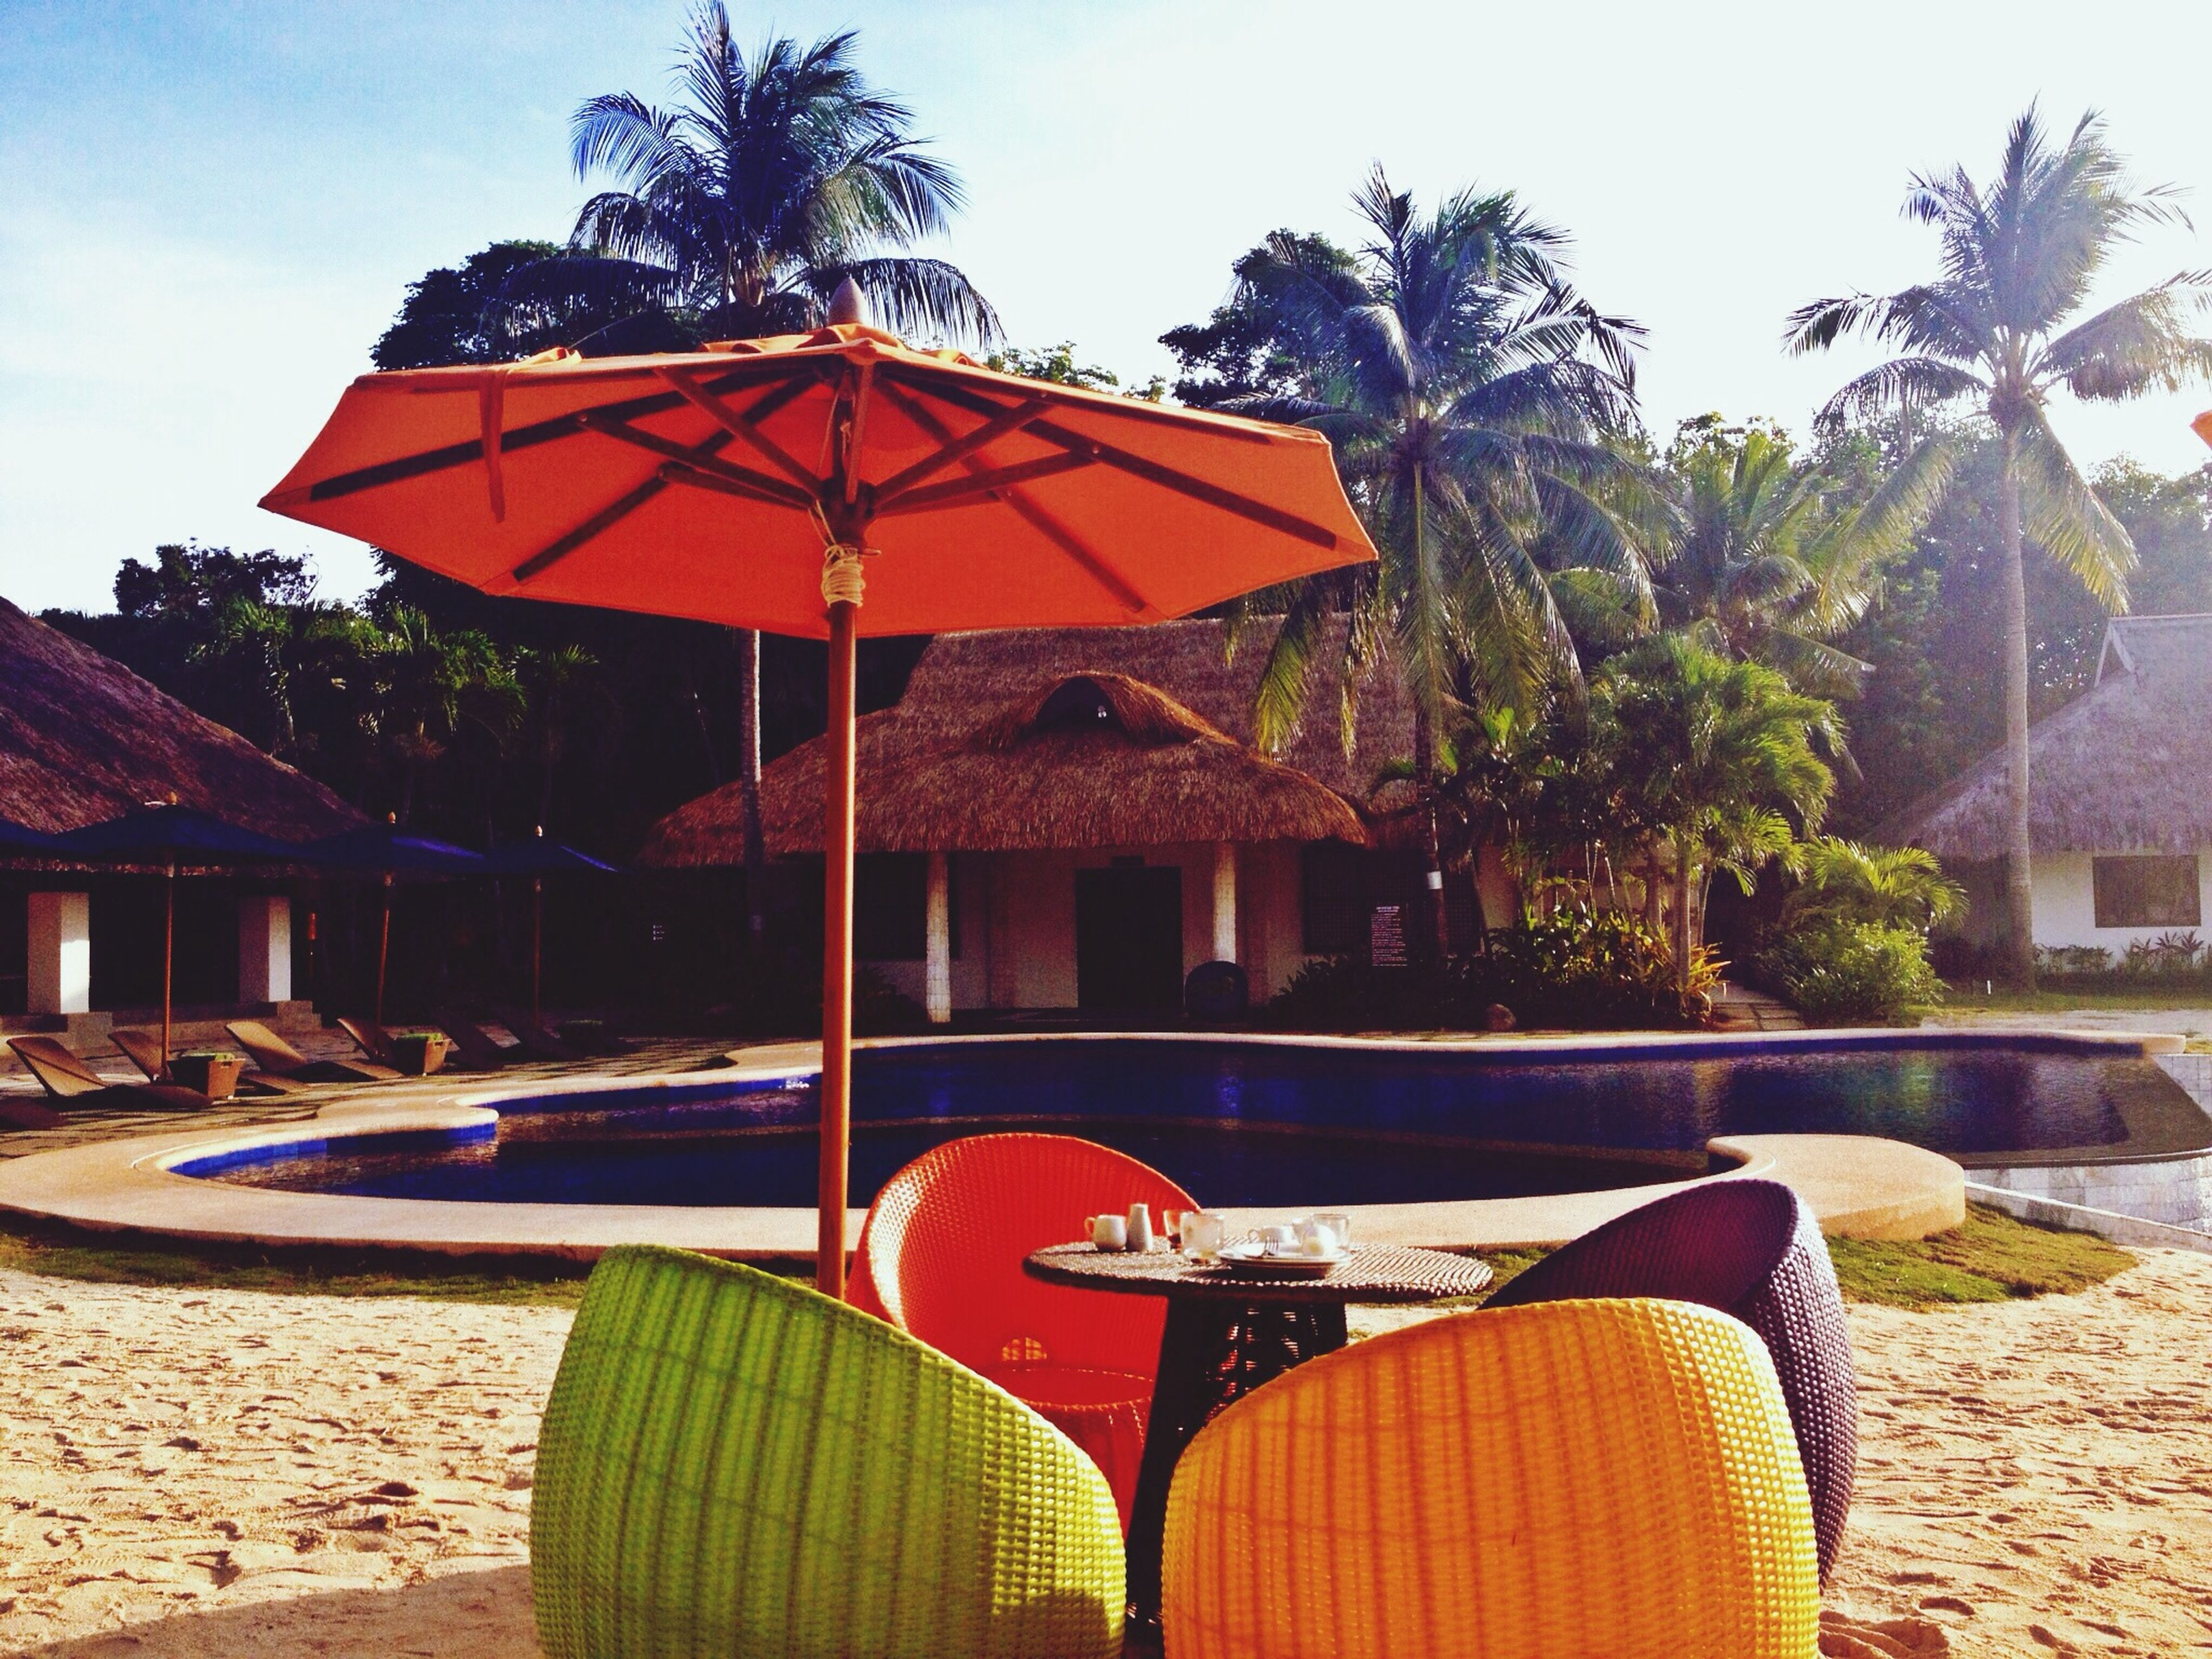 building exterior, built structure, architecture, tree, chair, beach, sunlight, absence, sky, parasol, sand, clear sky, day, house, table, outdoors, sunshade, beach umbrella, red, no people